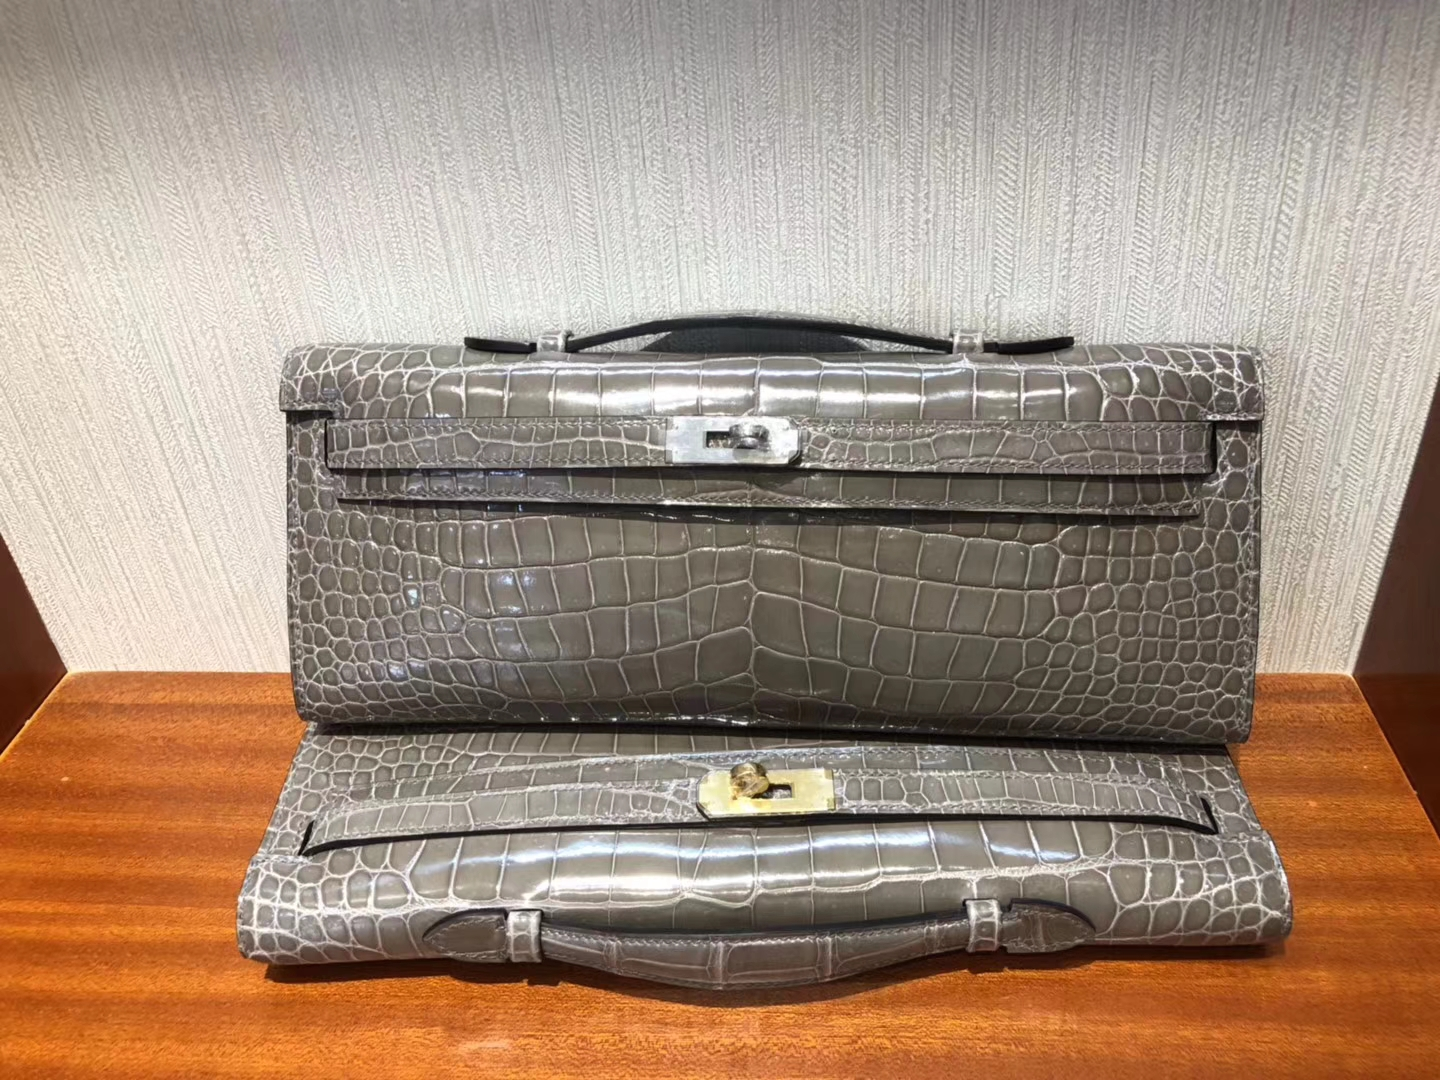 Sale Hermes Shiny Crocodile Kelly Cut Evening Bag in C81 Gris Tourterelle Silver Hardware